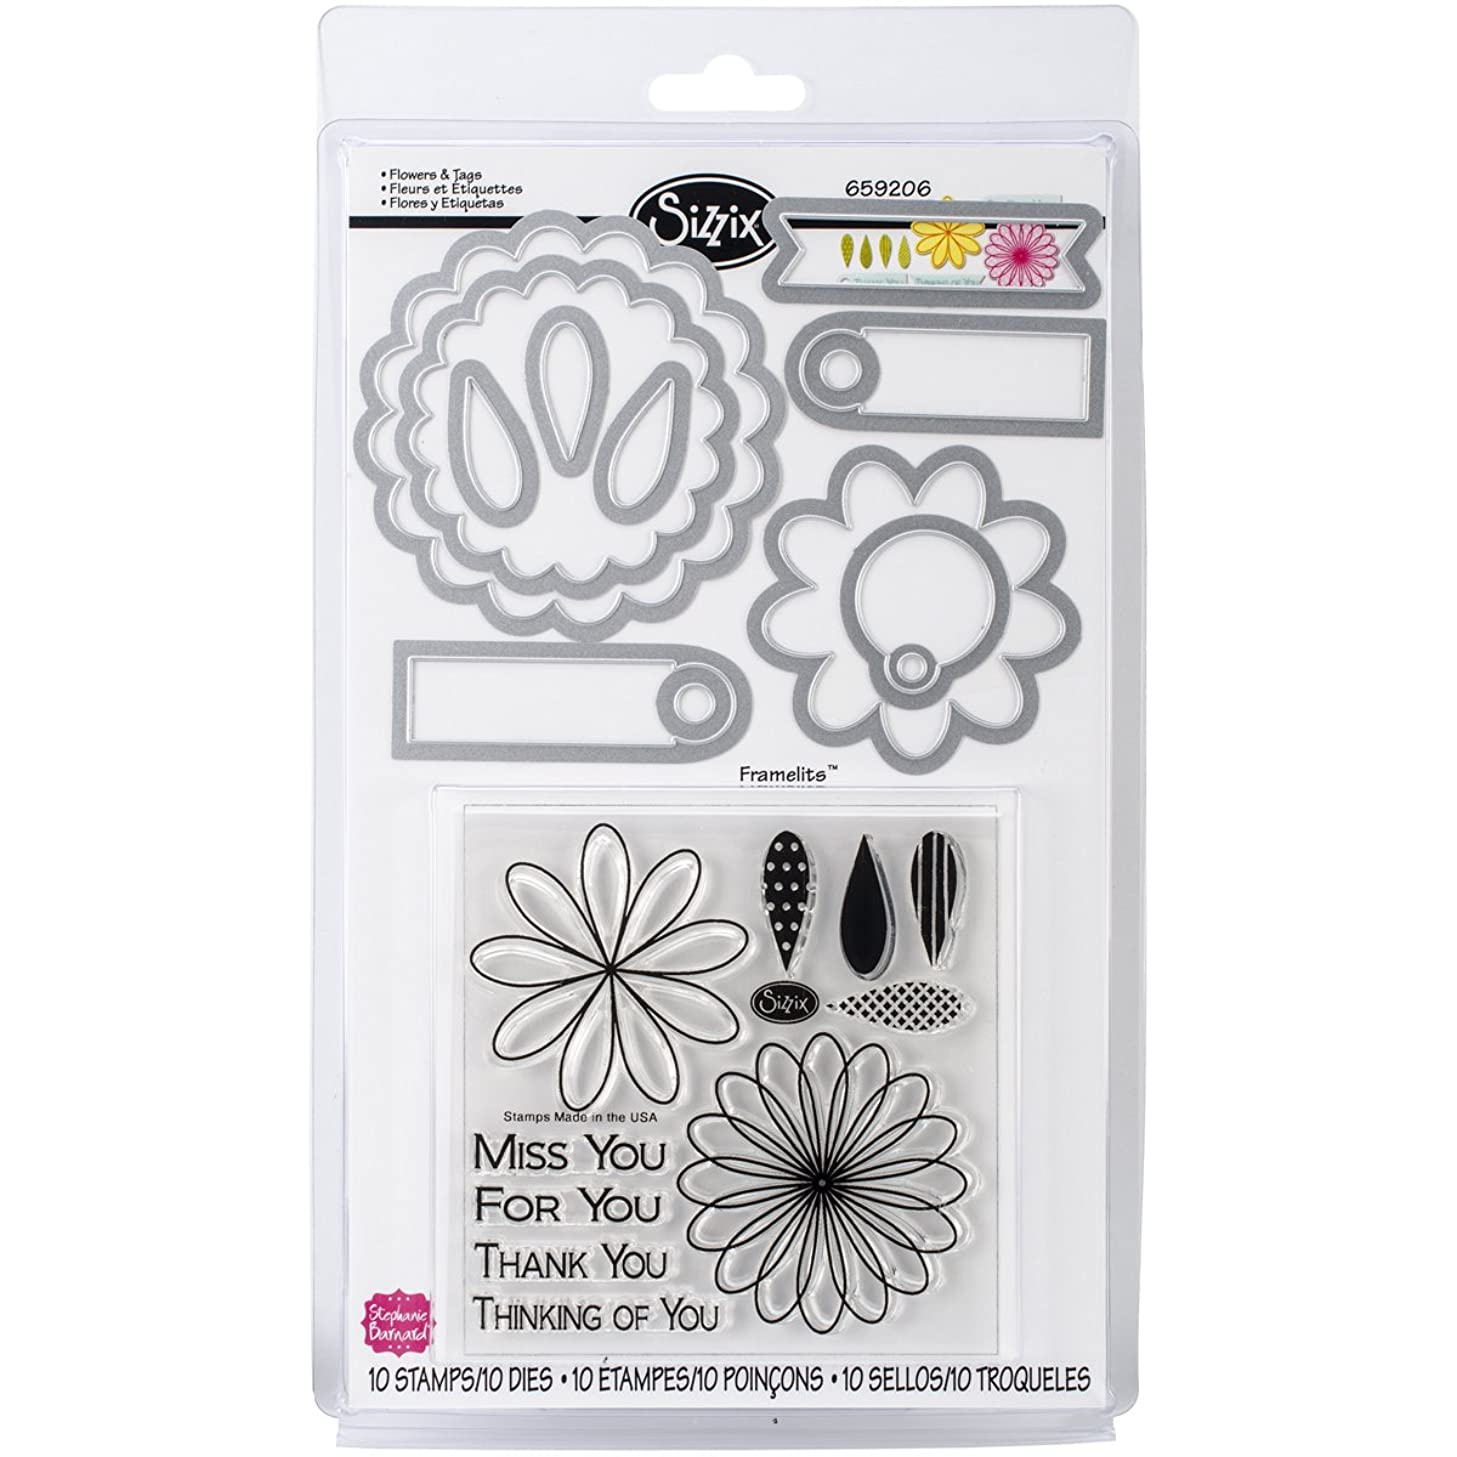 Sizzix Guidelines4quilting QR-UPKT Quilt Ruler Upgrade Kit